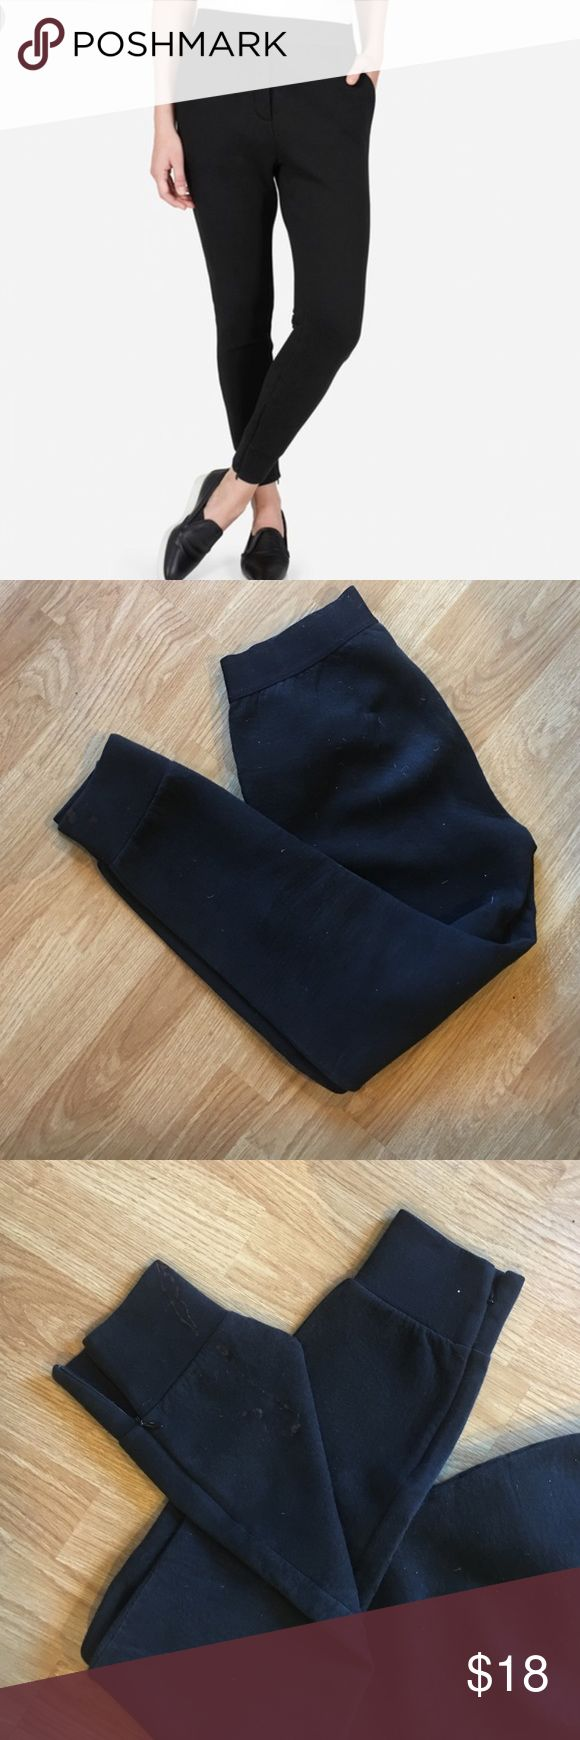 Everlane street fleece joggers | small Please read:  great sweatpants and very comfortable, but I got some bleach on the bottom :( I filled in with a sharpie marker, but it was kind of an old dried out marker. This could help a lot! That's why they are marked down so low. Everlane Pants Track Pants & Joggers